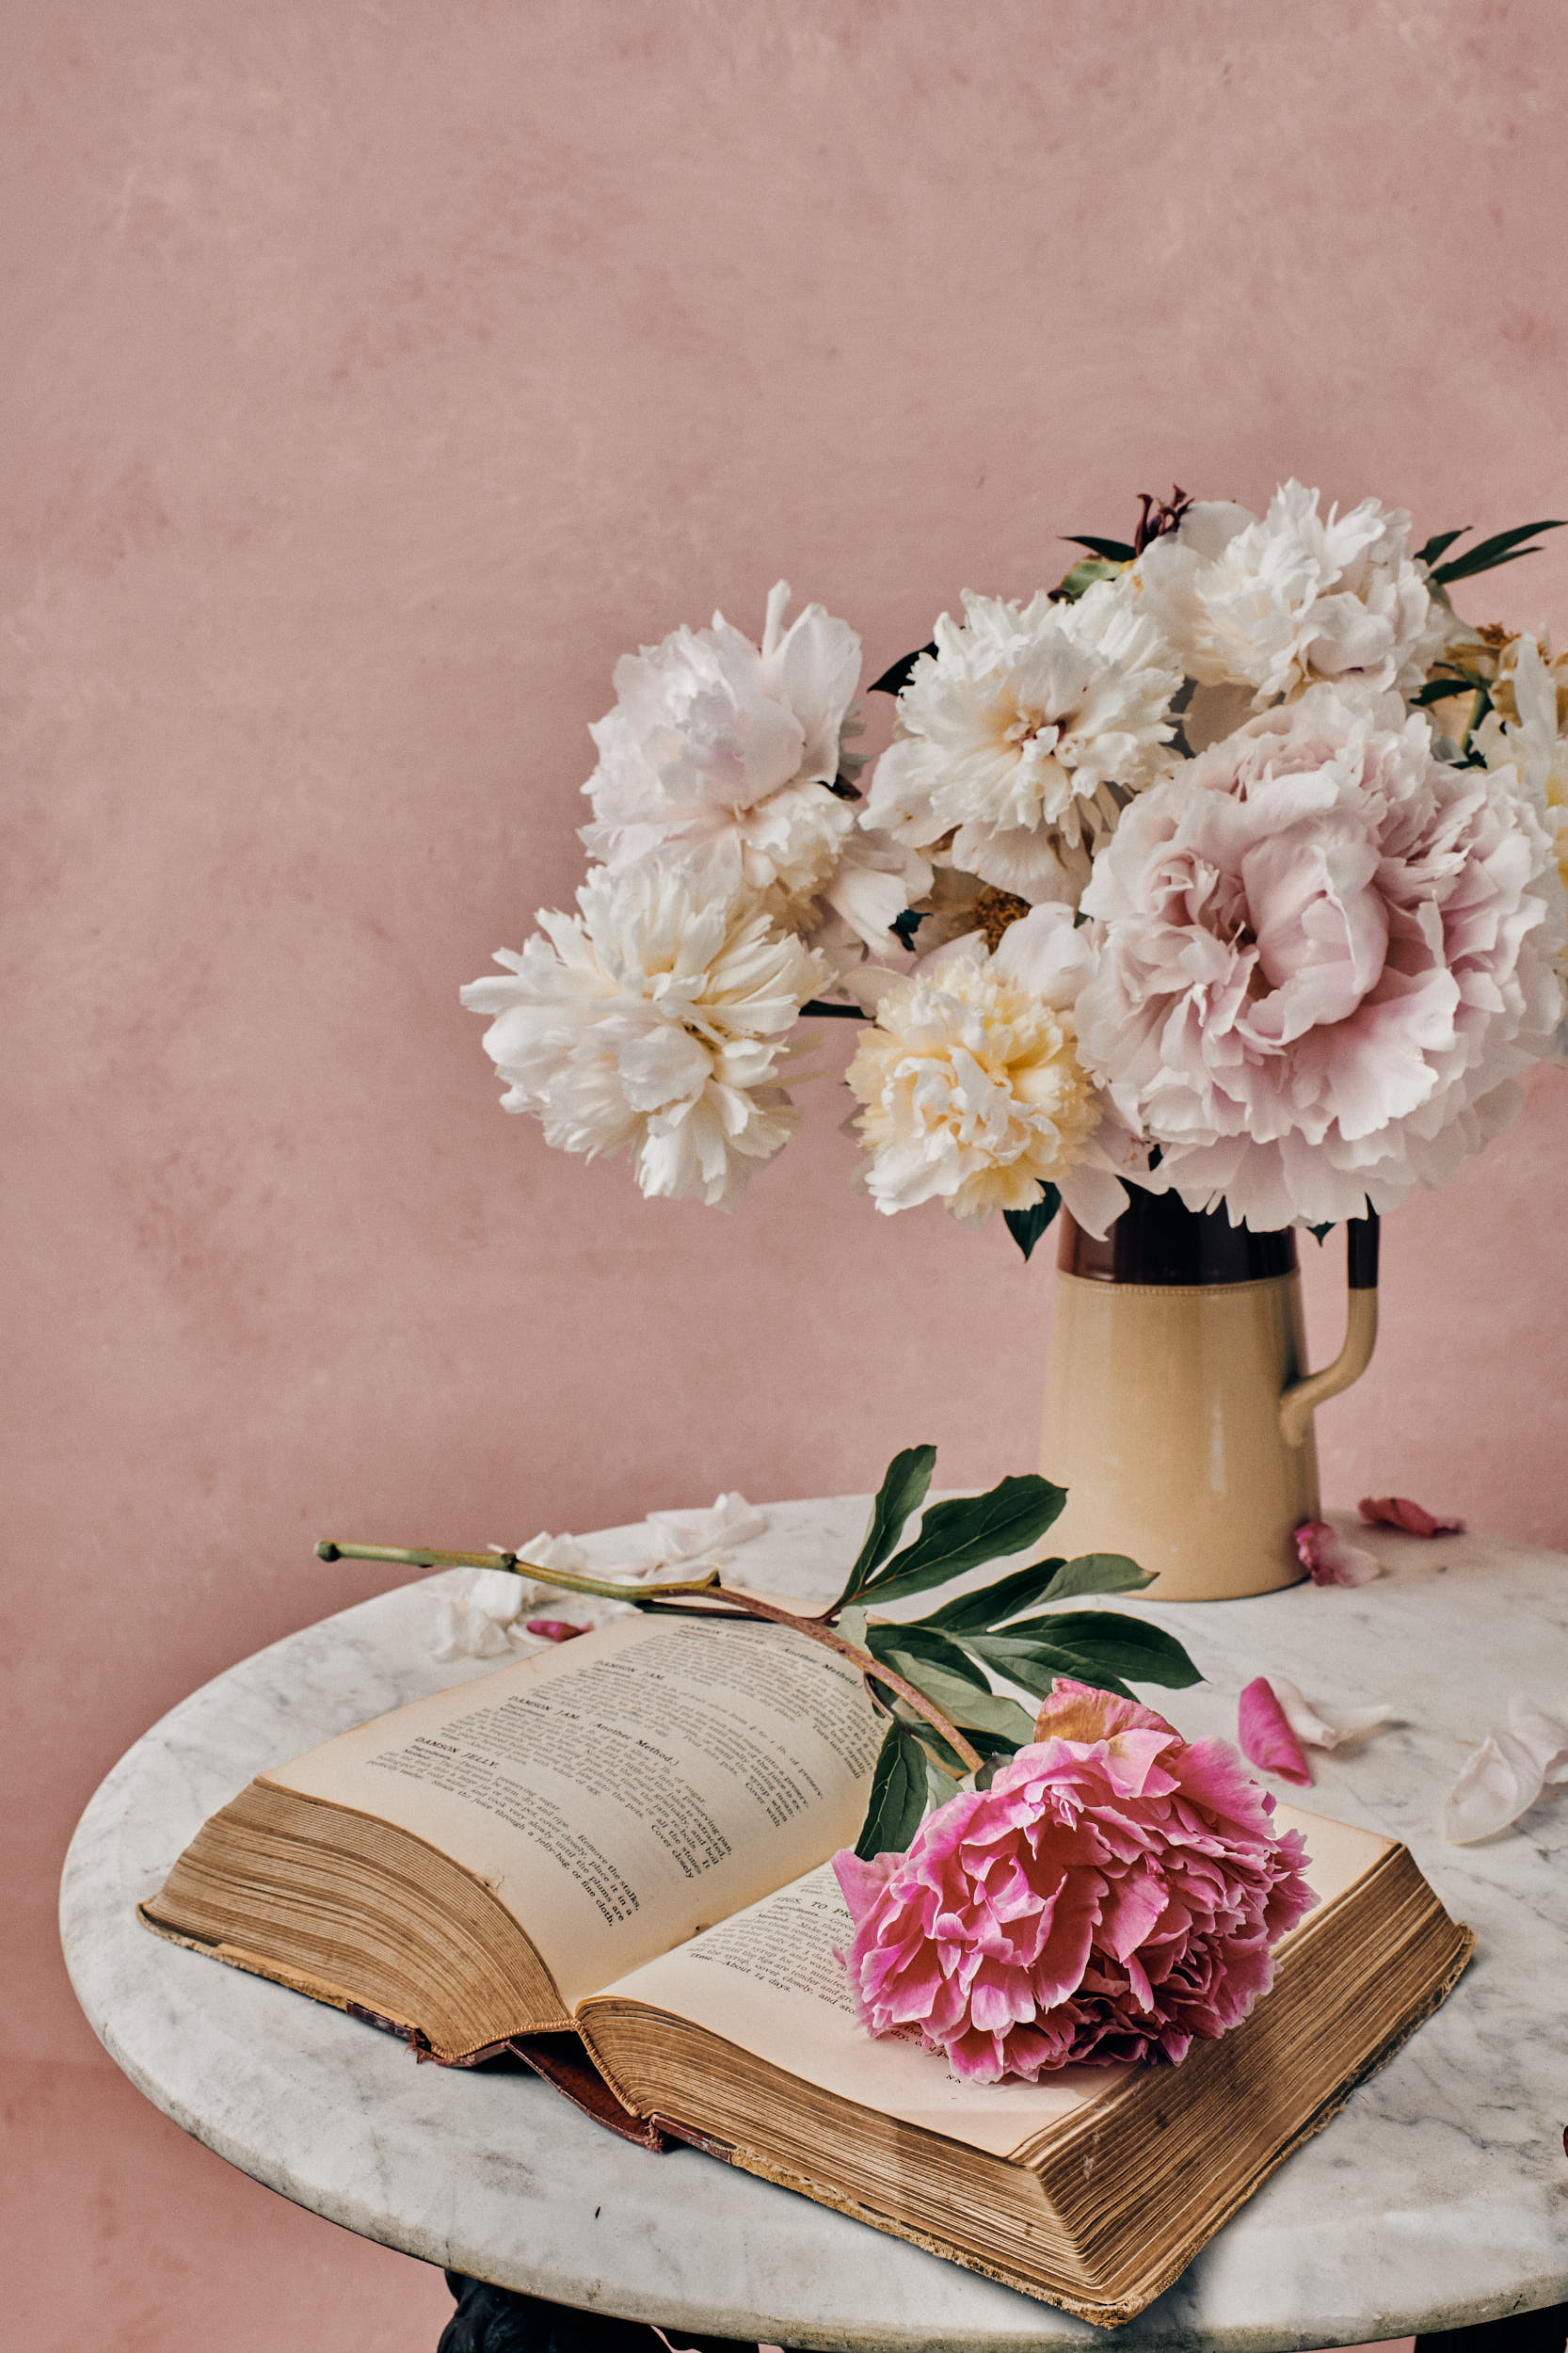 a still life fine art photography of pink peoniesin a vase with Mrs beetons books, in the style of a dutch masters painting by yorkshire based photographer matthew lloyd